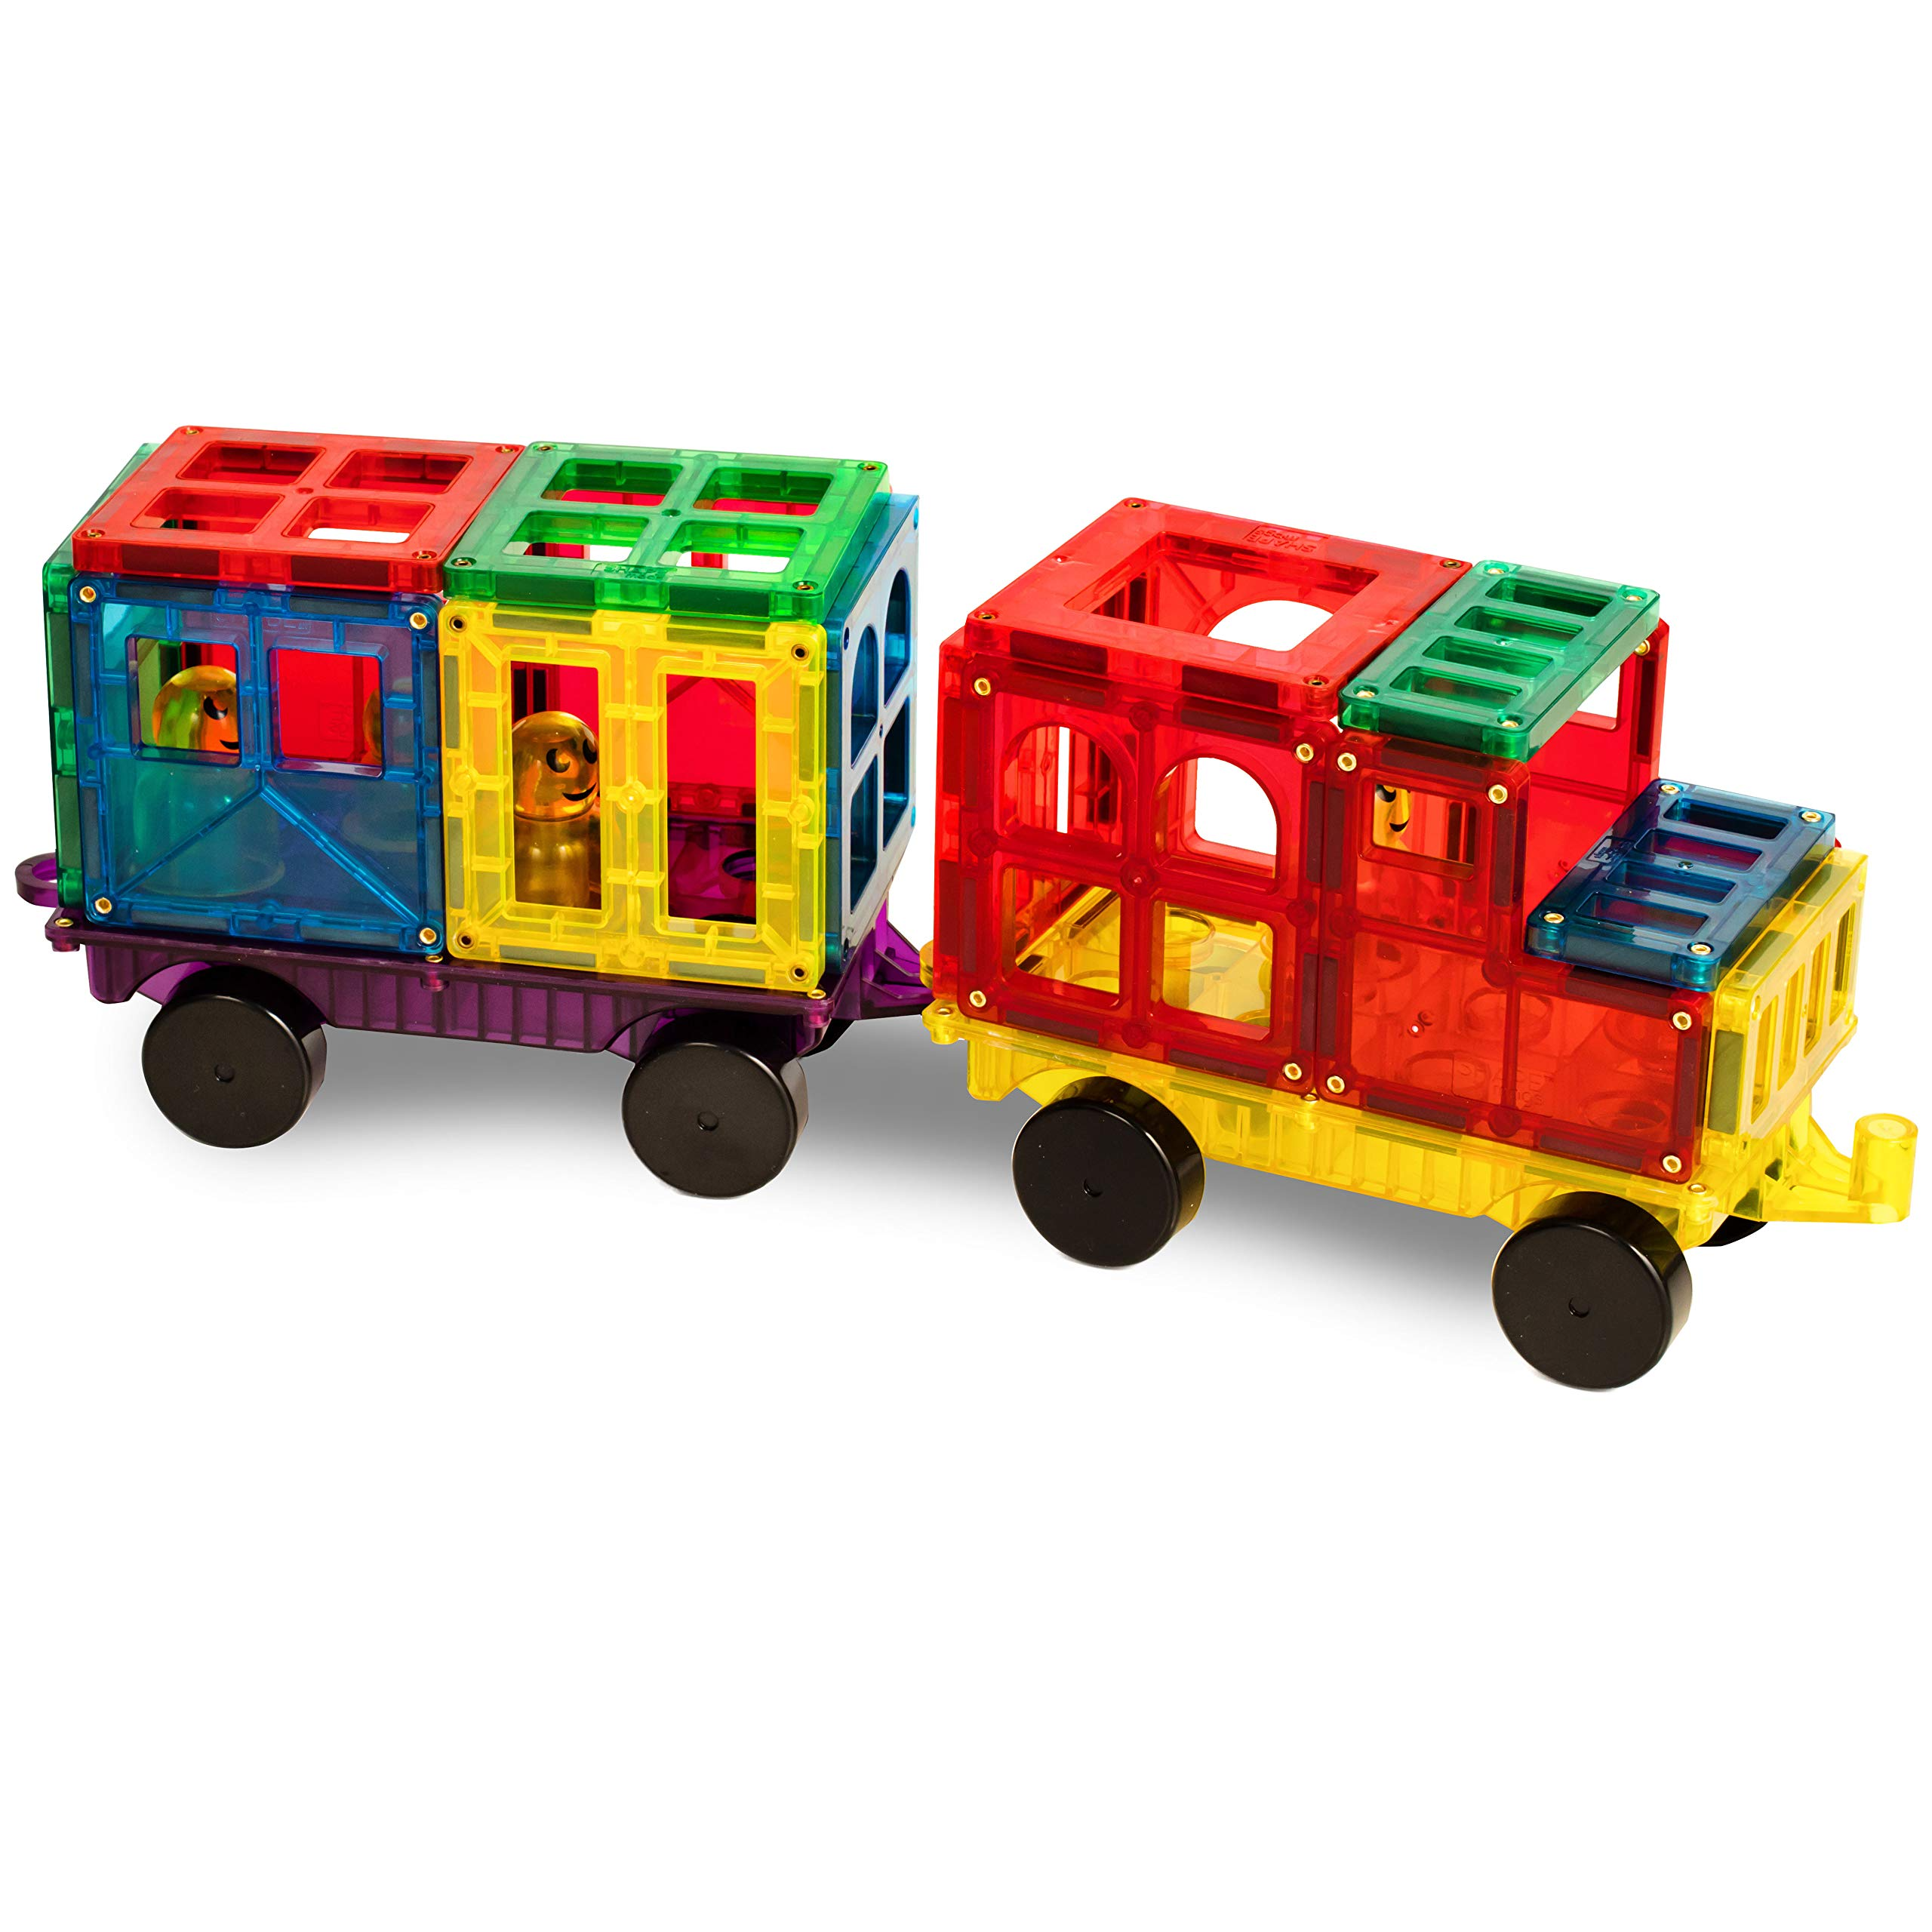 Shapemags Magnetic Tiles 50 Piece Building Set - Includes 47 Tiles and 3 Car Bases. Made with Power+Magnets